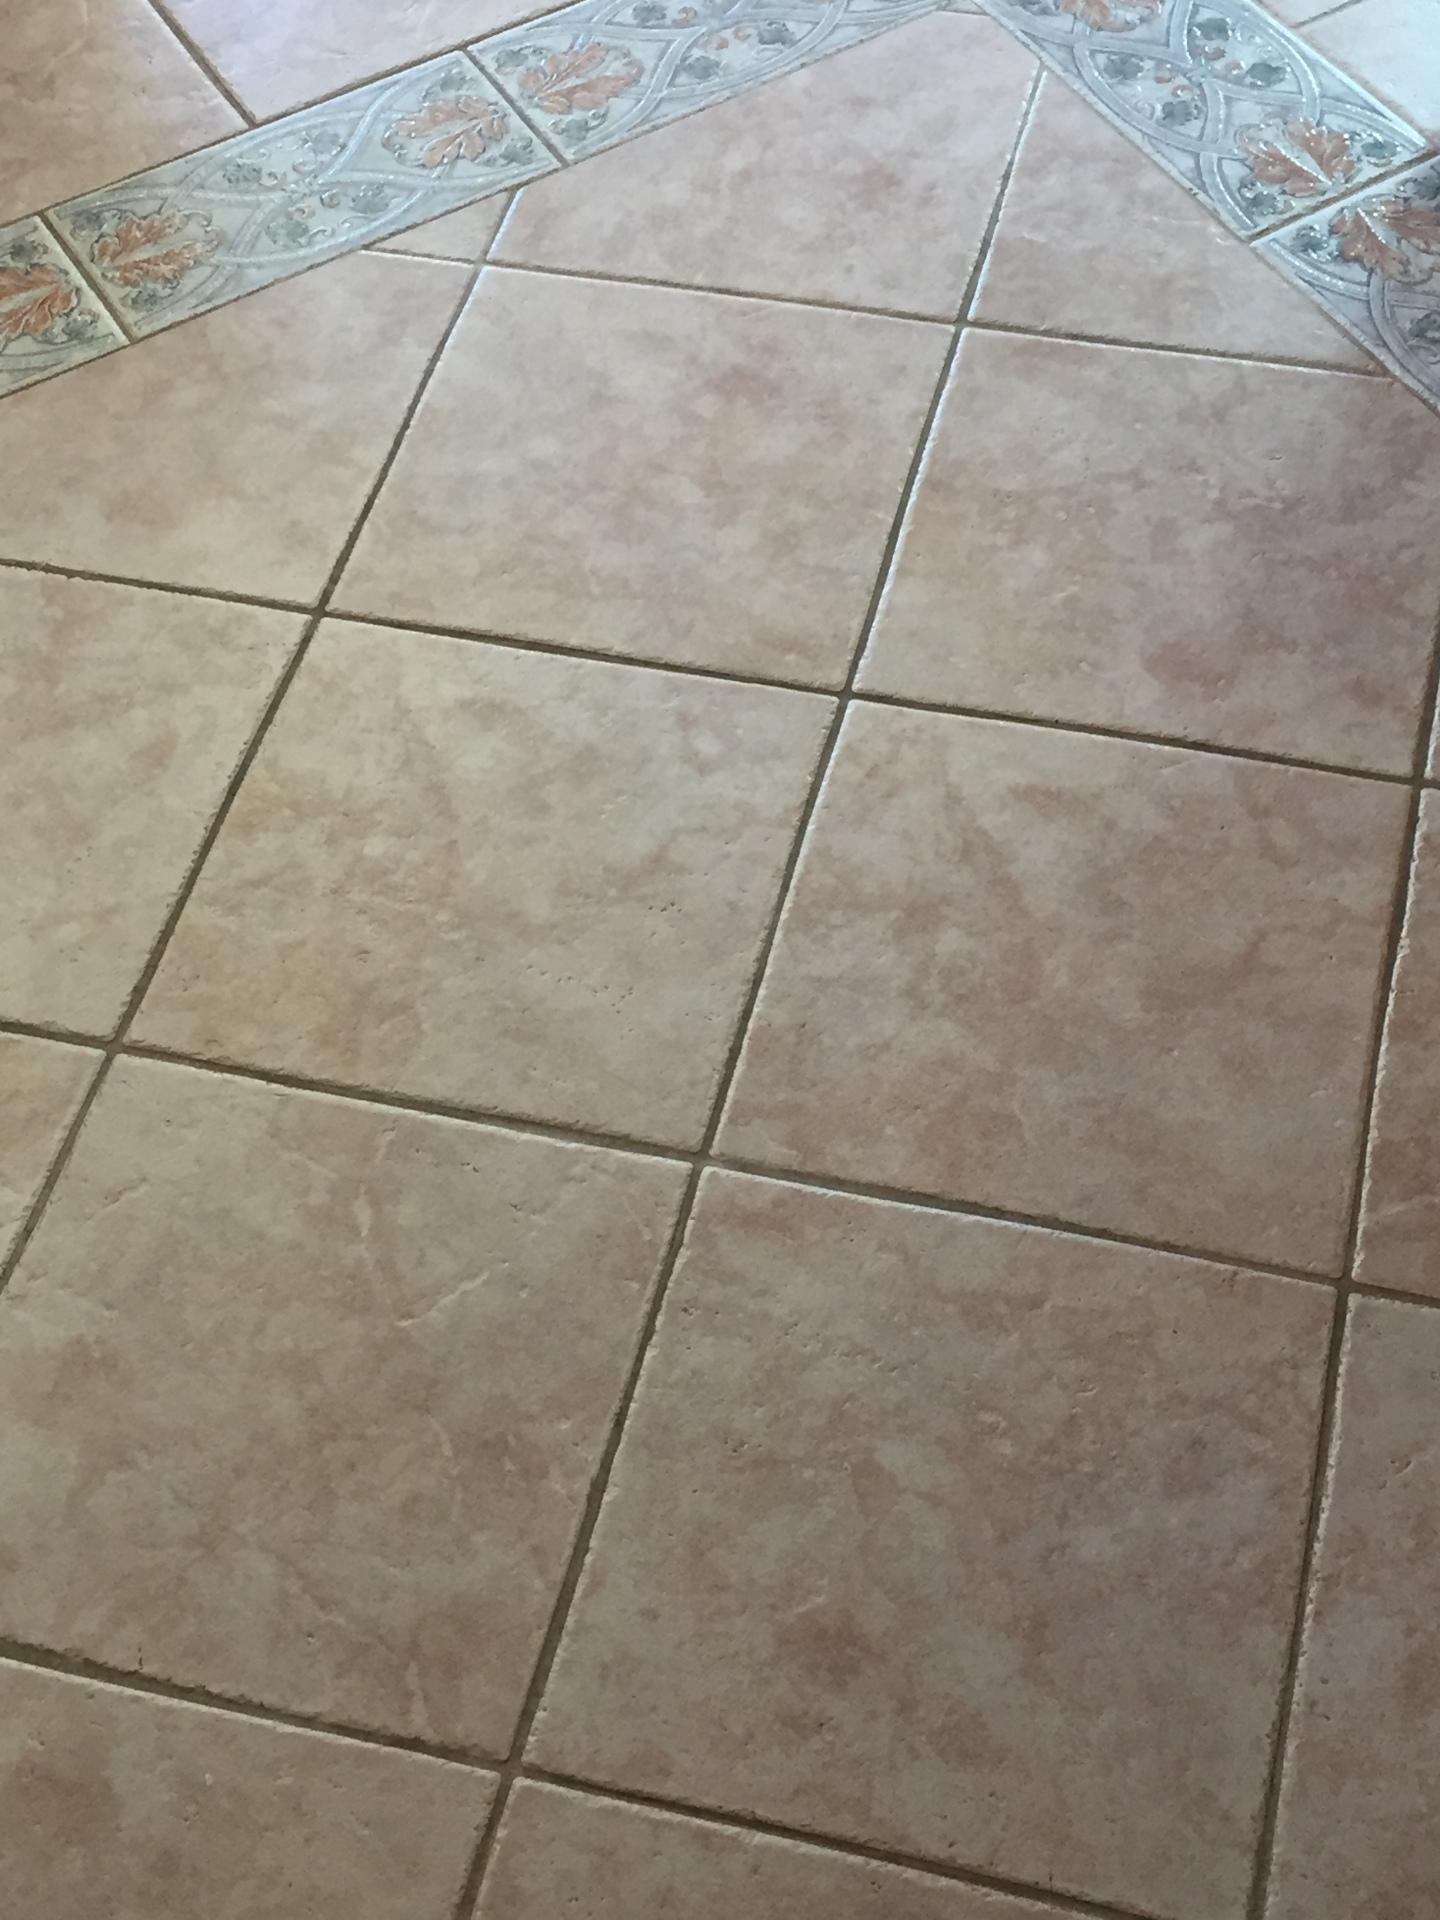 Before we cleaned tile and grout.